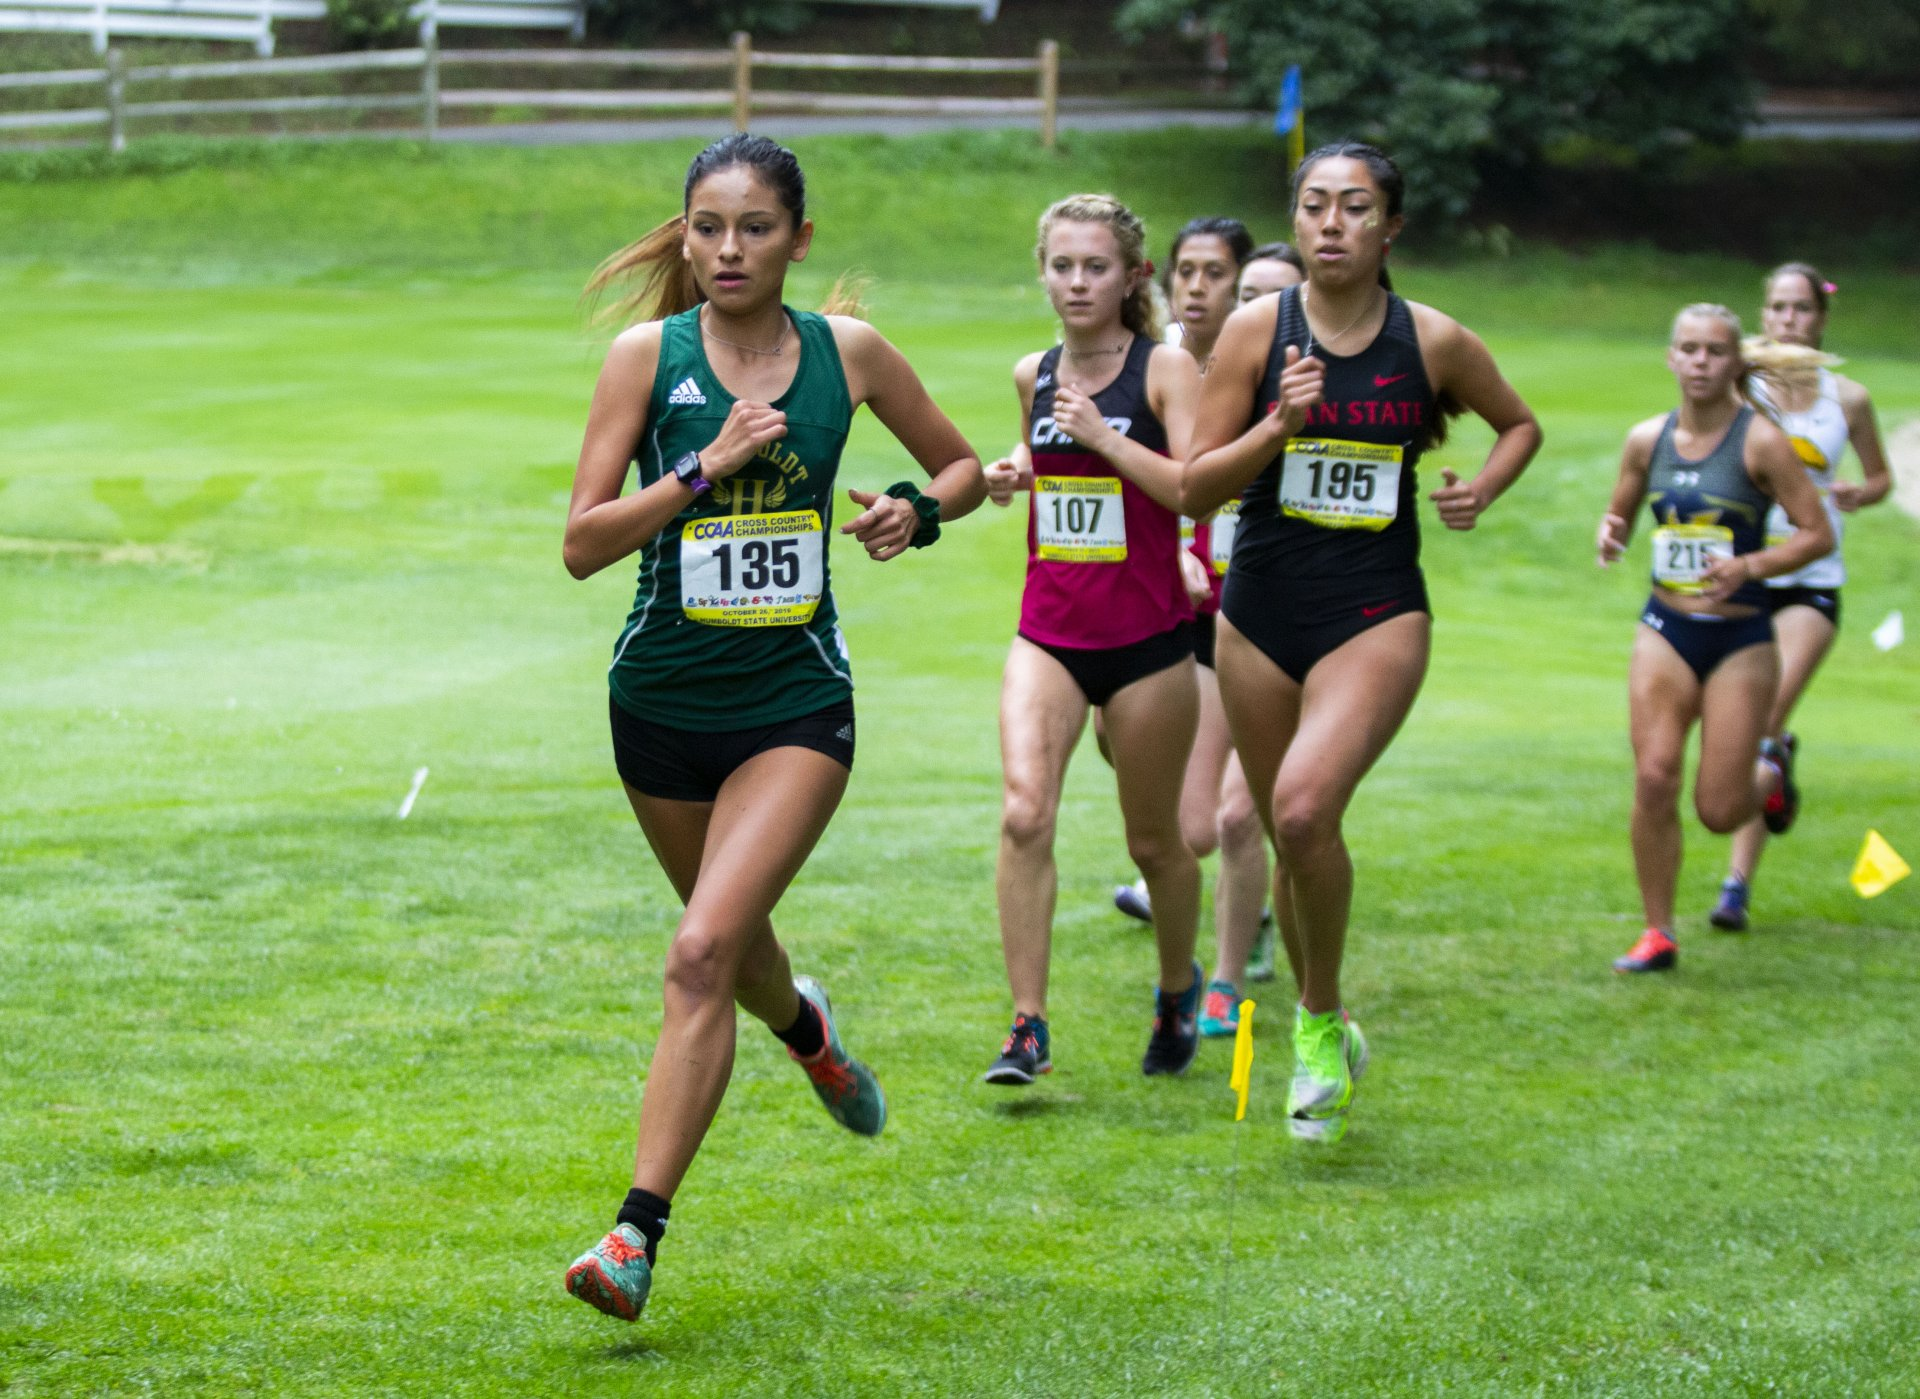 Humboldt State's Rosa Granados leads a small pack of runners duirng the CCAA conference meet at Baywood Golf & Country Club on October 26.